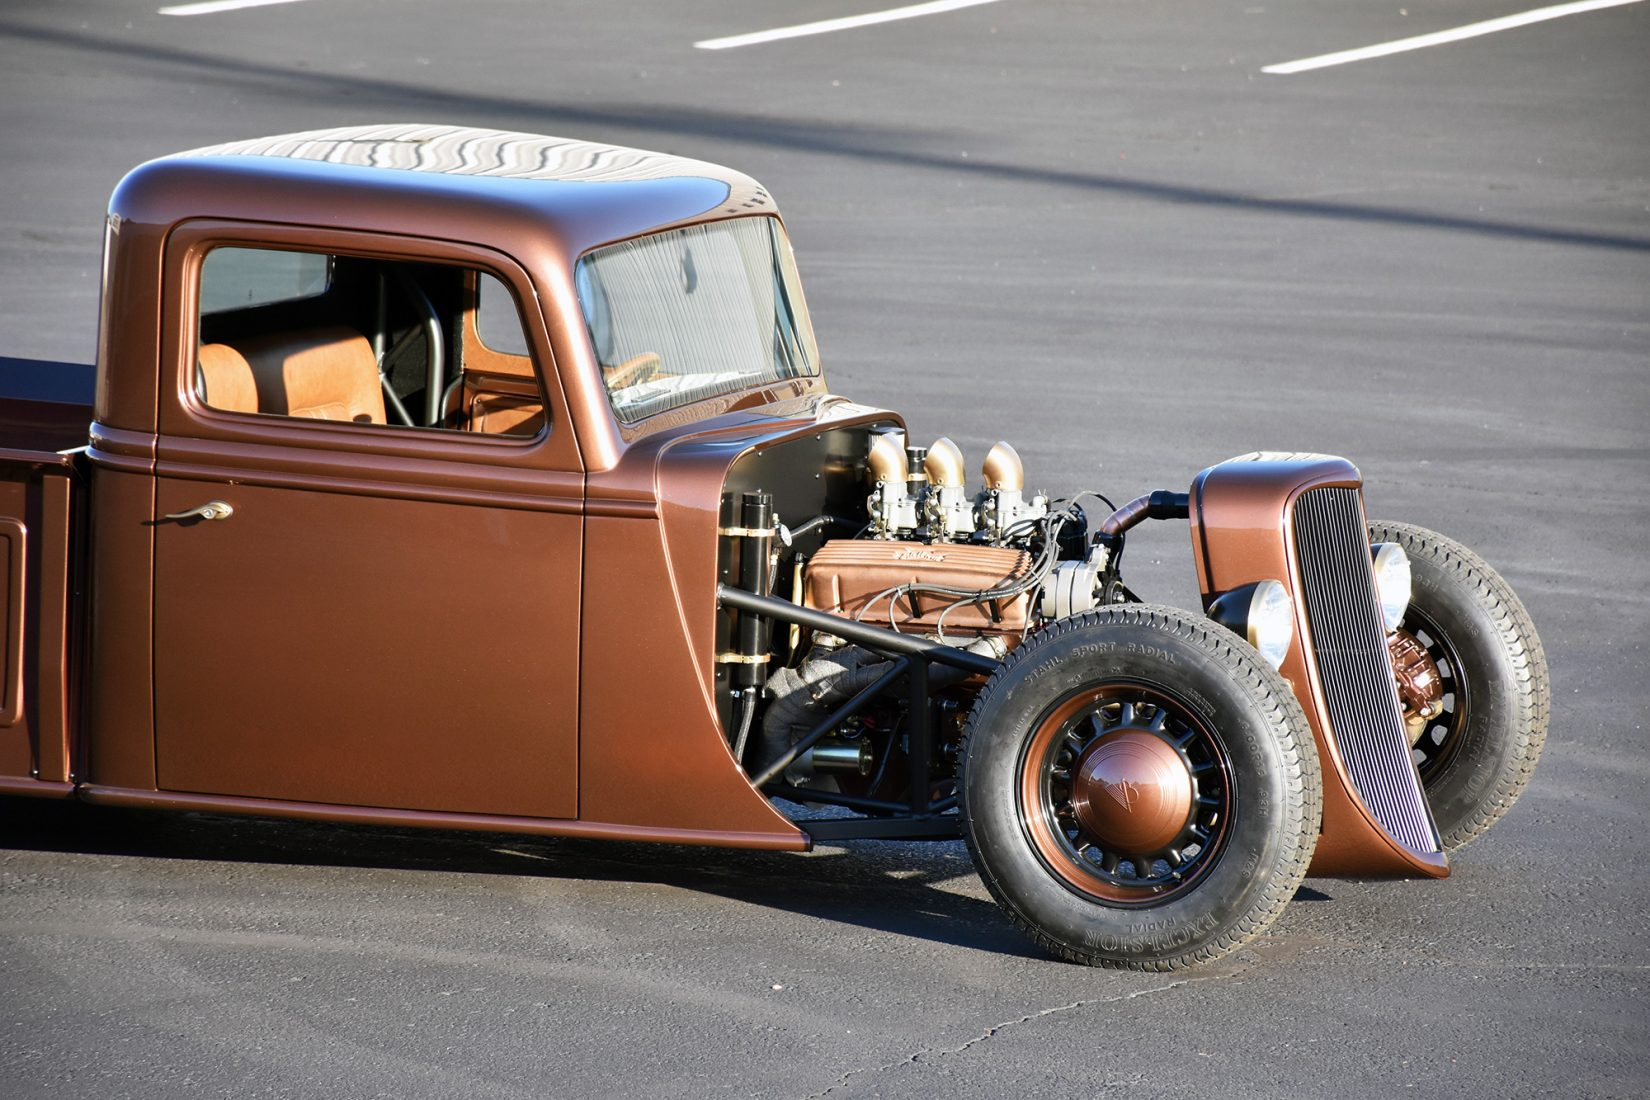 factory fives hot rod truck available end of first quarter 2018 2018 02 27_18 45 29_776150 factory five's '35 hot rod truck available to order soon